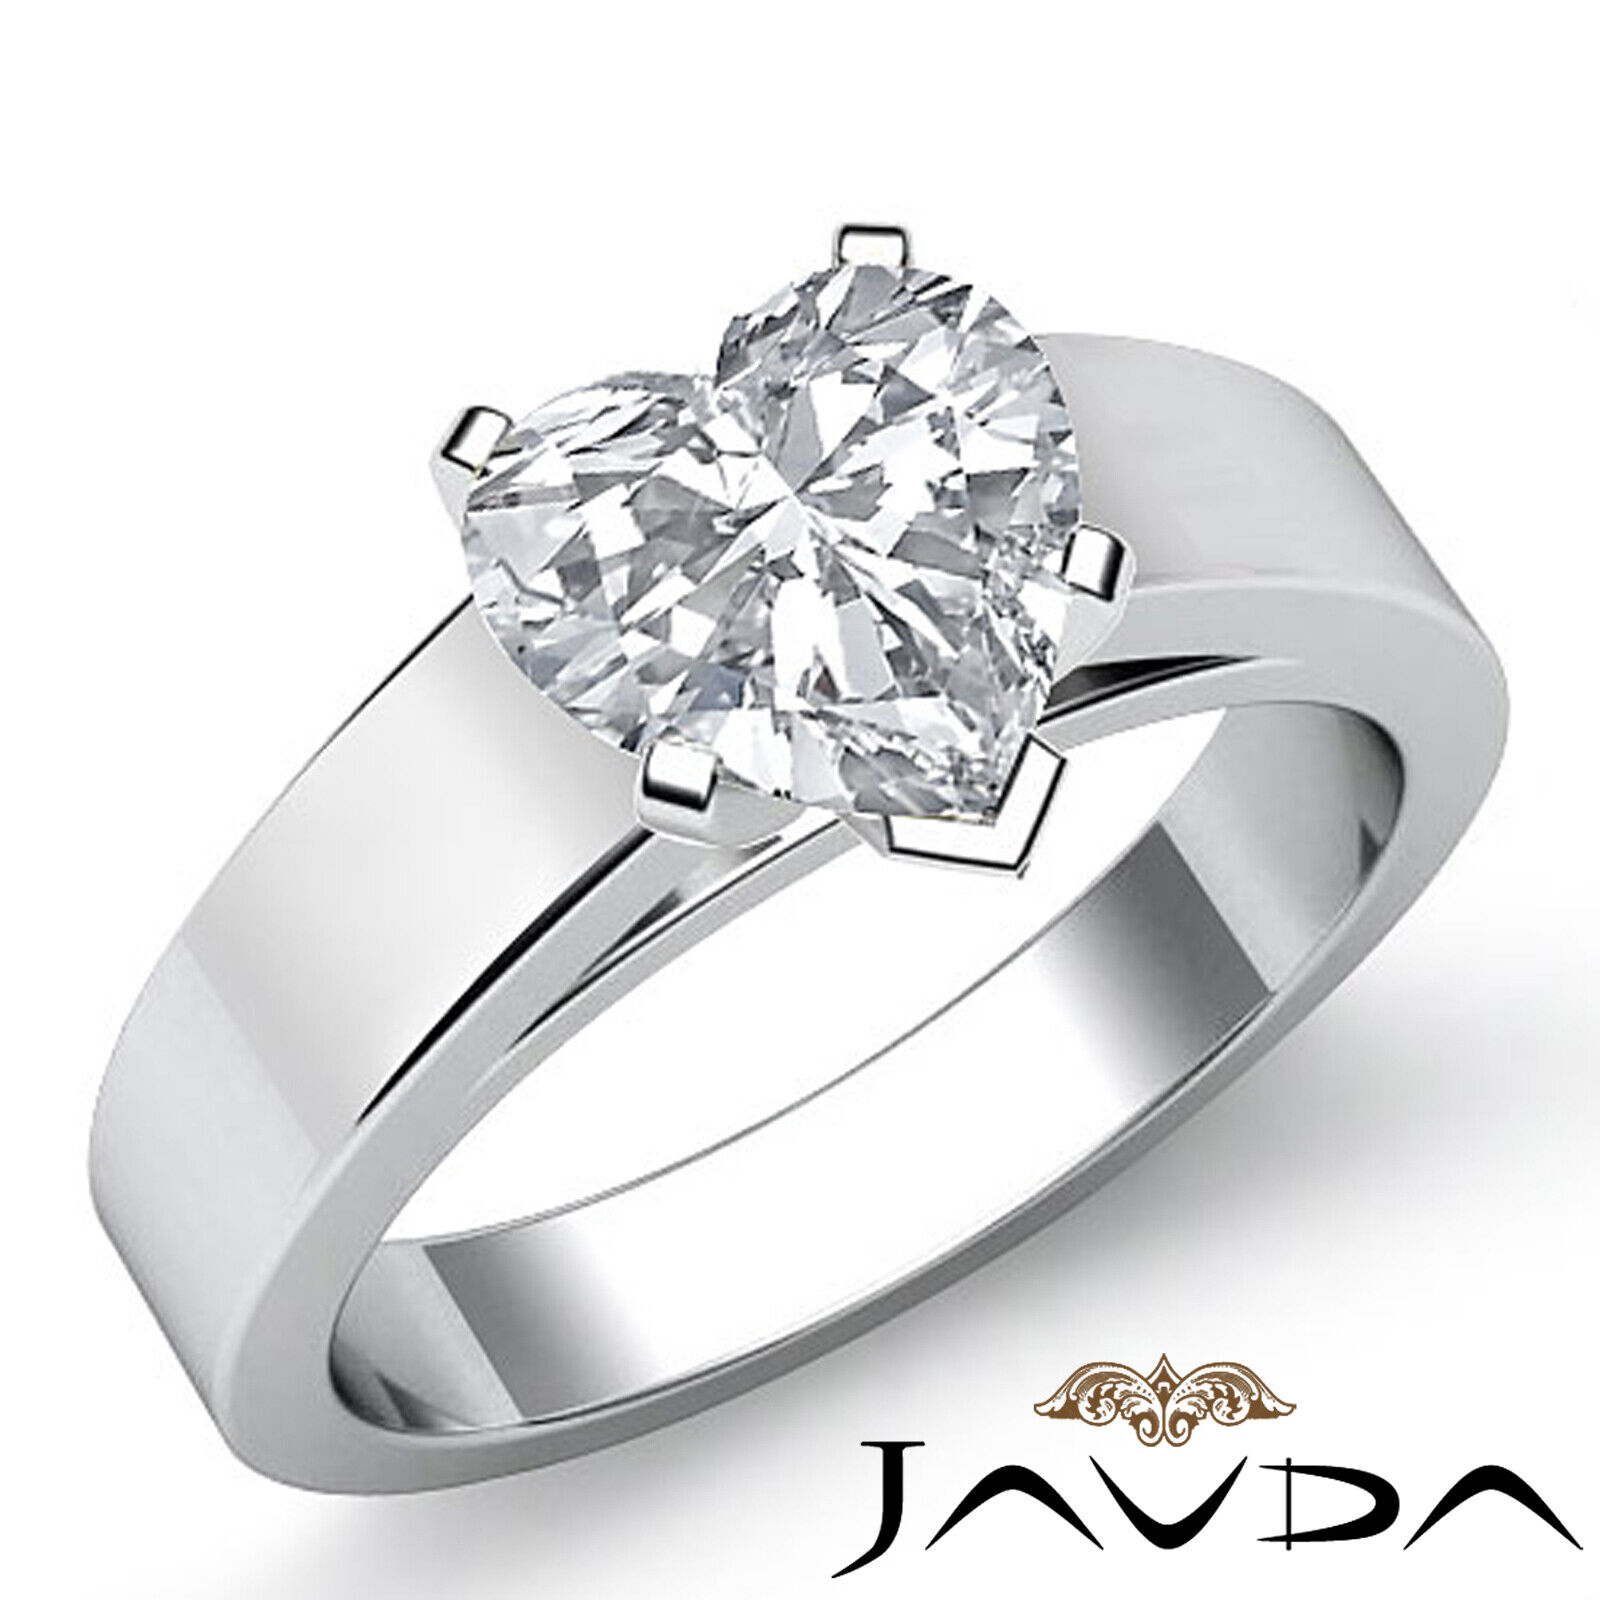 Heart Diamond Engagement GIA, H  VS2 Gold Ring Flat Cathedral Solitaire 1.20 ct.